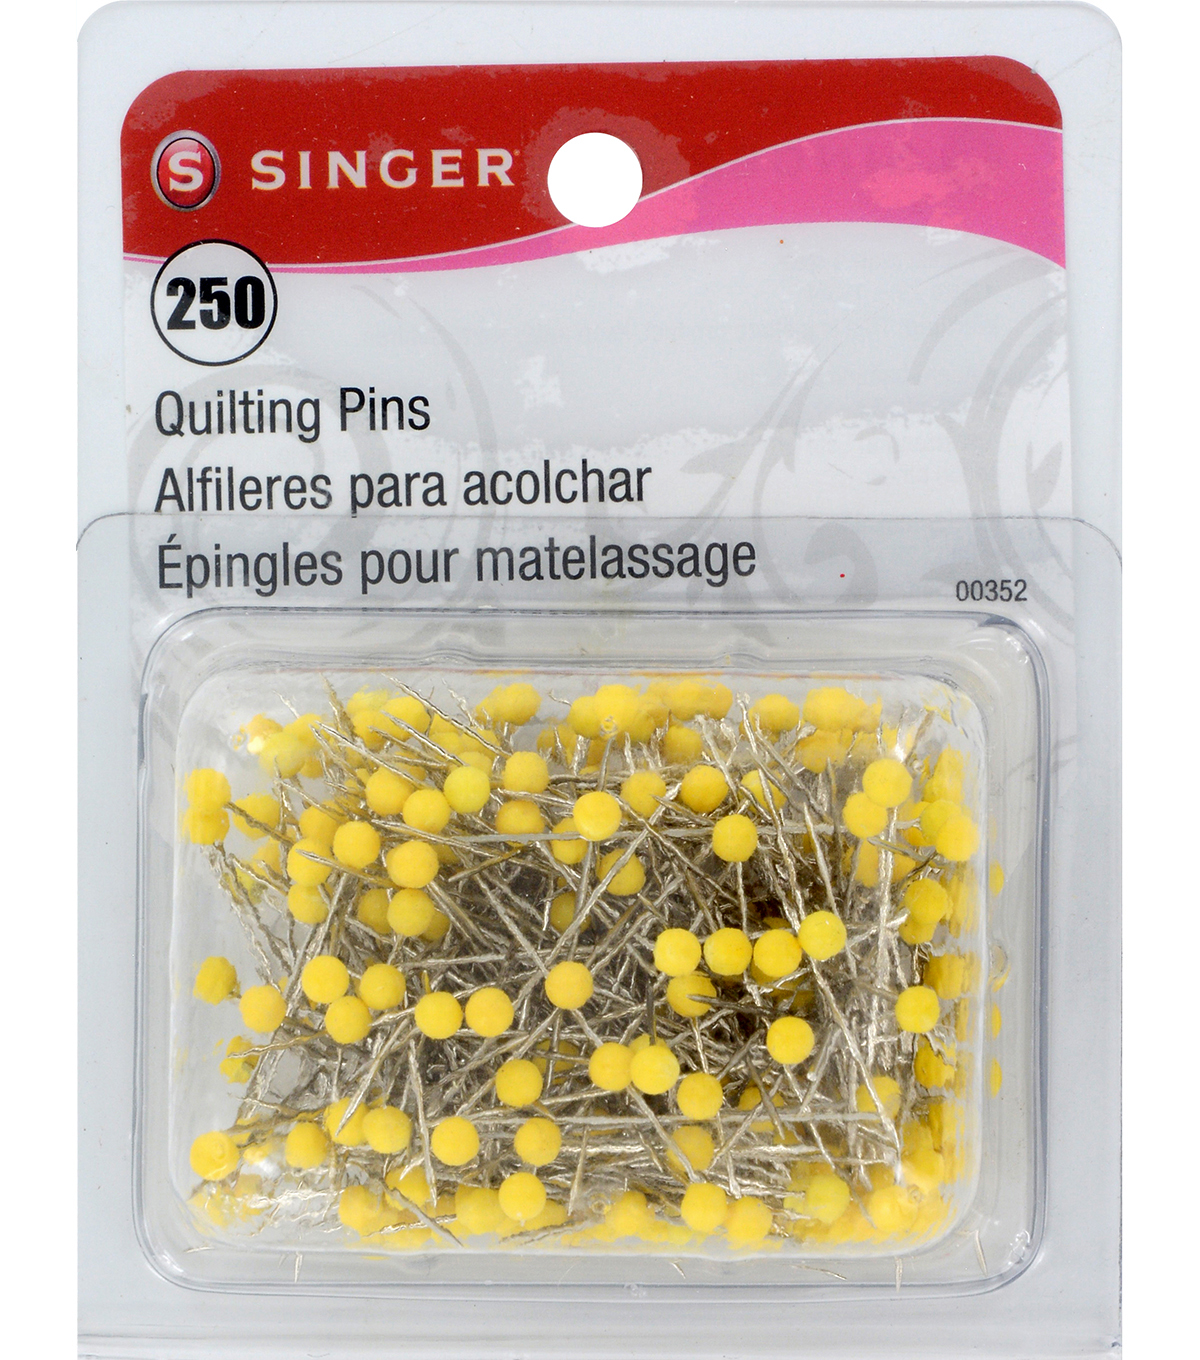 250 Quilting Pins